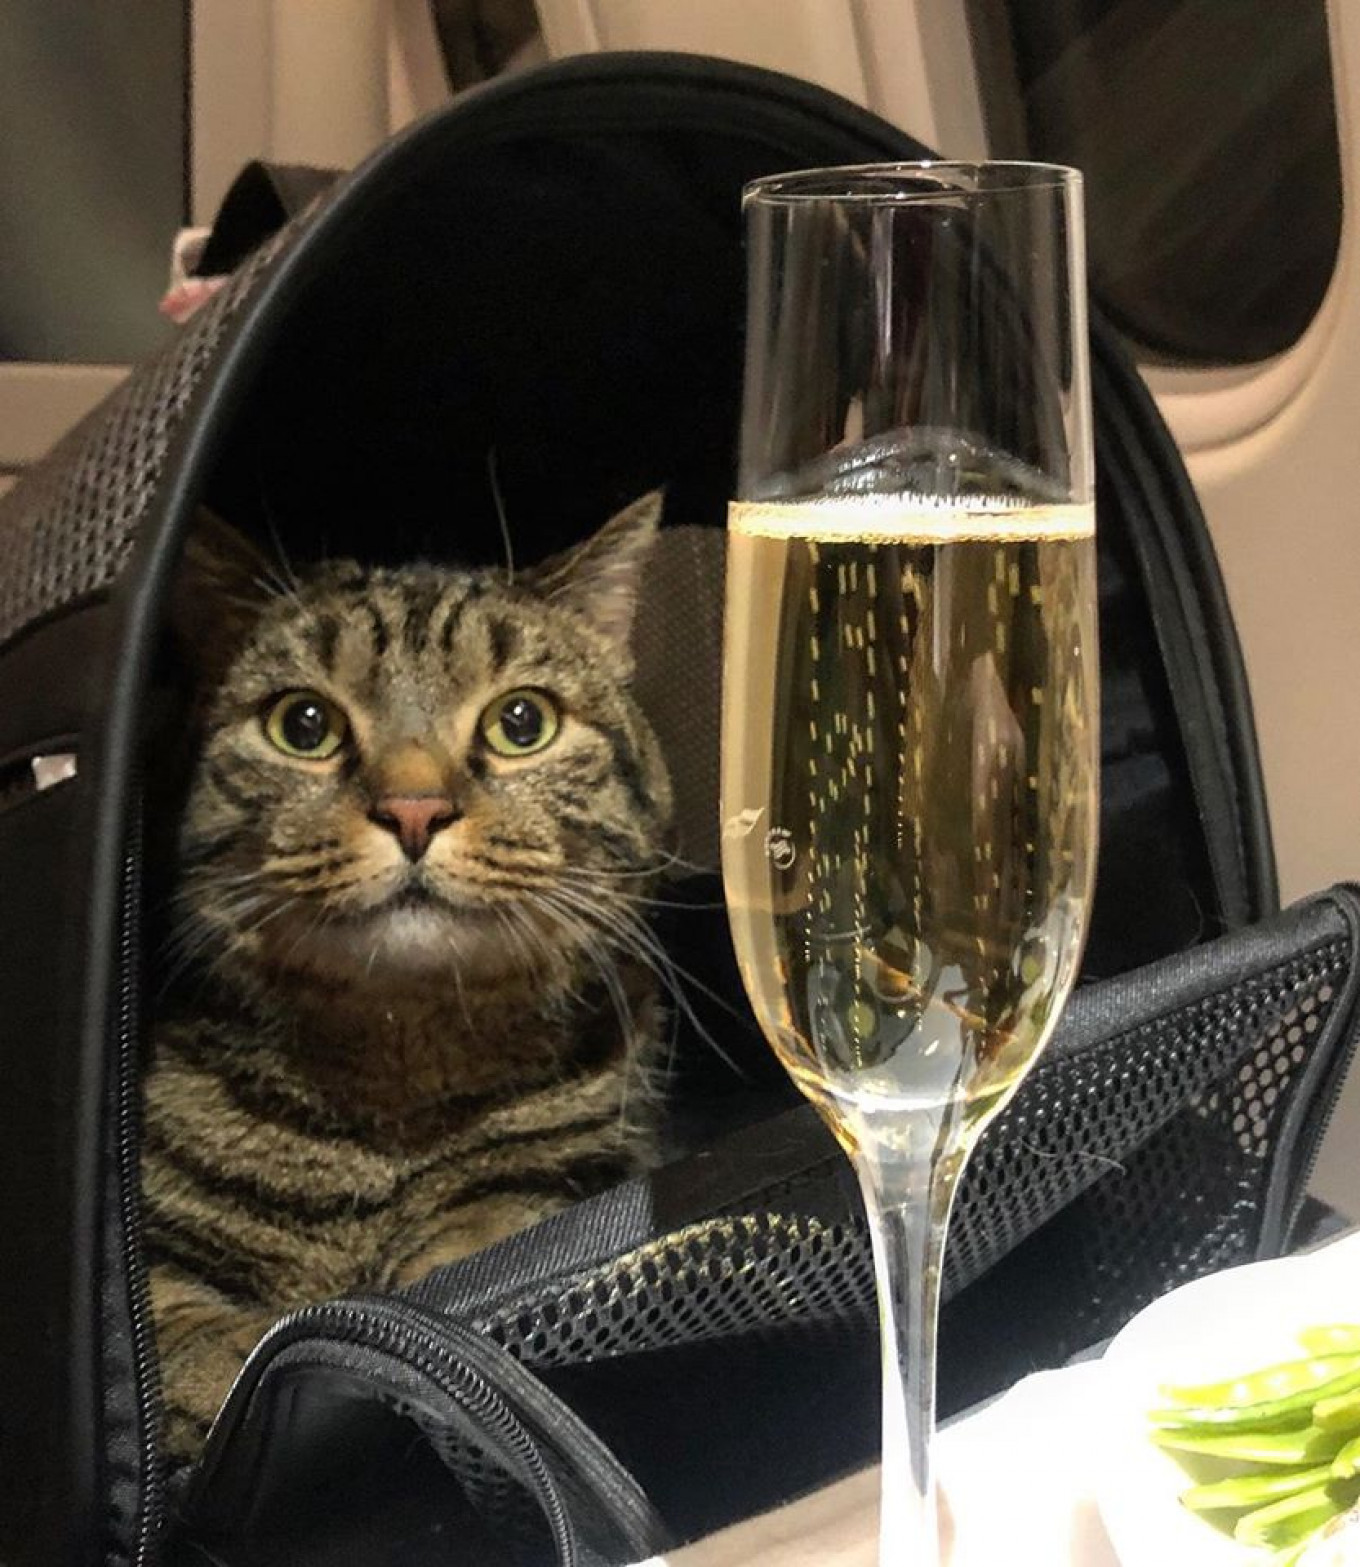 Viktor and his owner Mikhail popped champagne once comfortably seated in business class. facebook.com/mikhail.galin.7